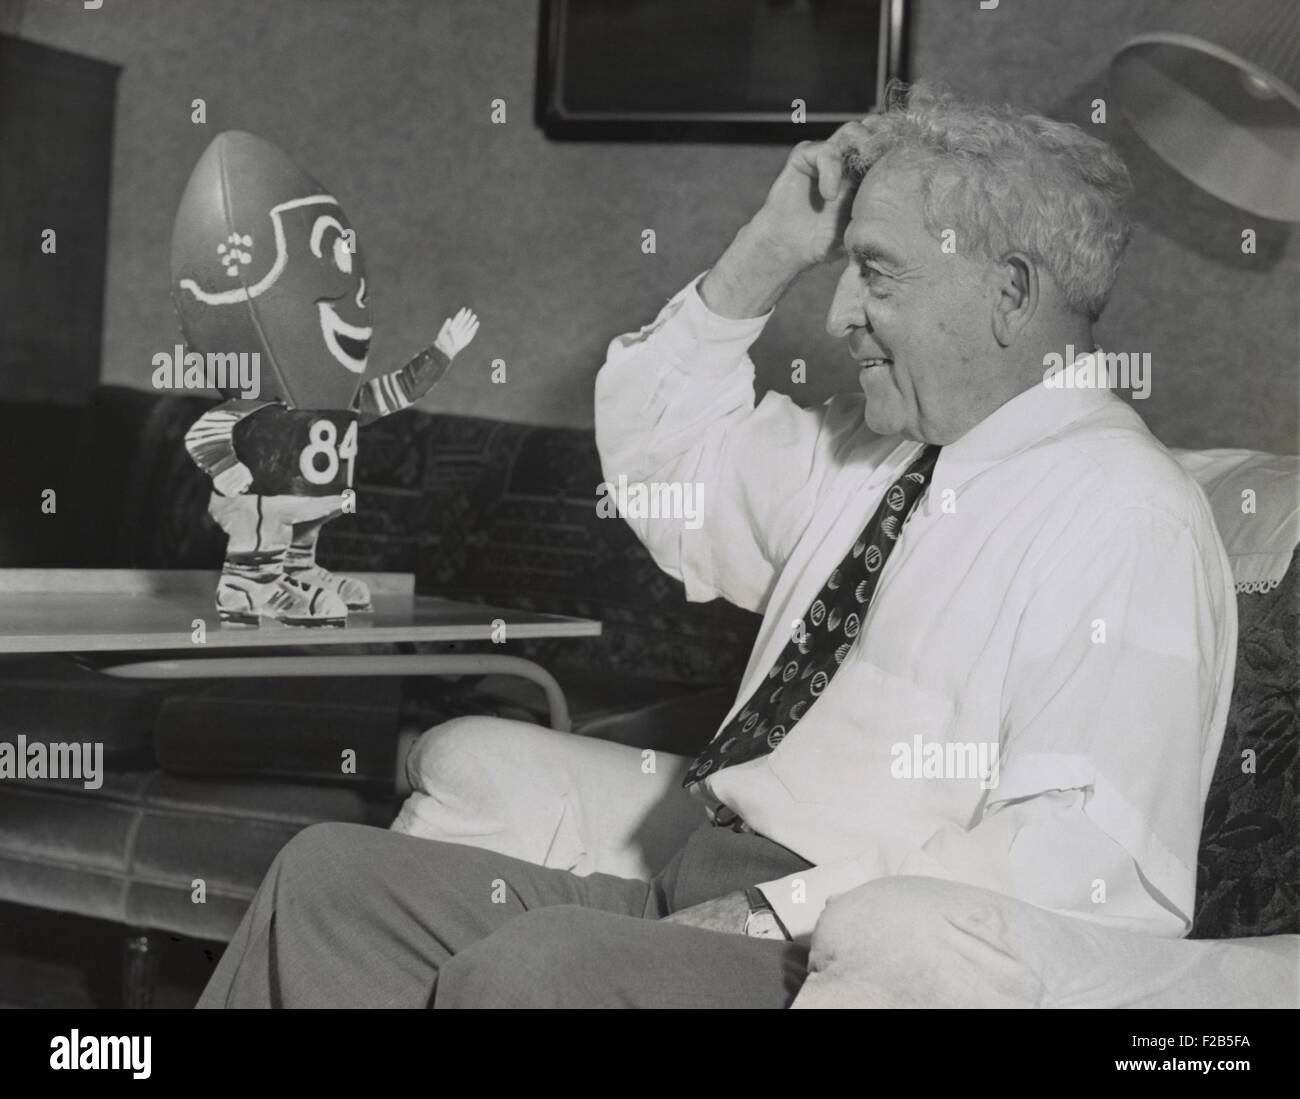 Amos Alonzo Stagg smiling at football creature. On his 84th birthday, the football pioneer had been coaching for - Stock Image